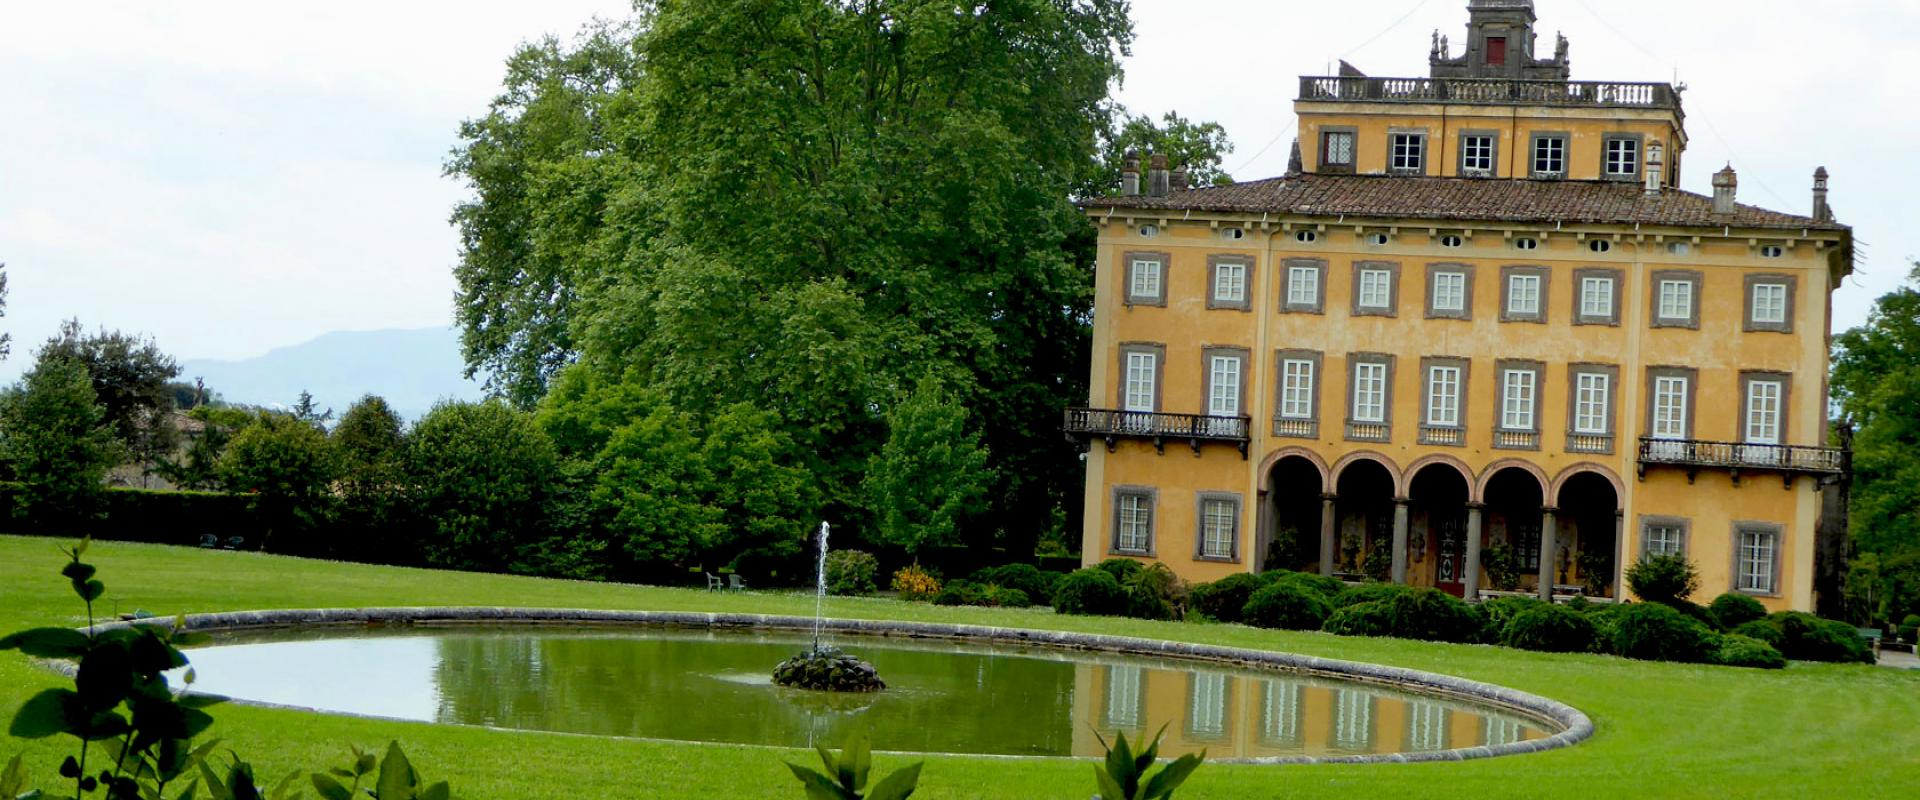 Guided walking tour of Lucca countryside and Villa Torrigiani